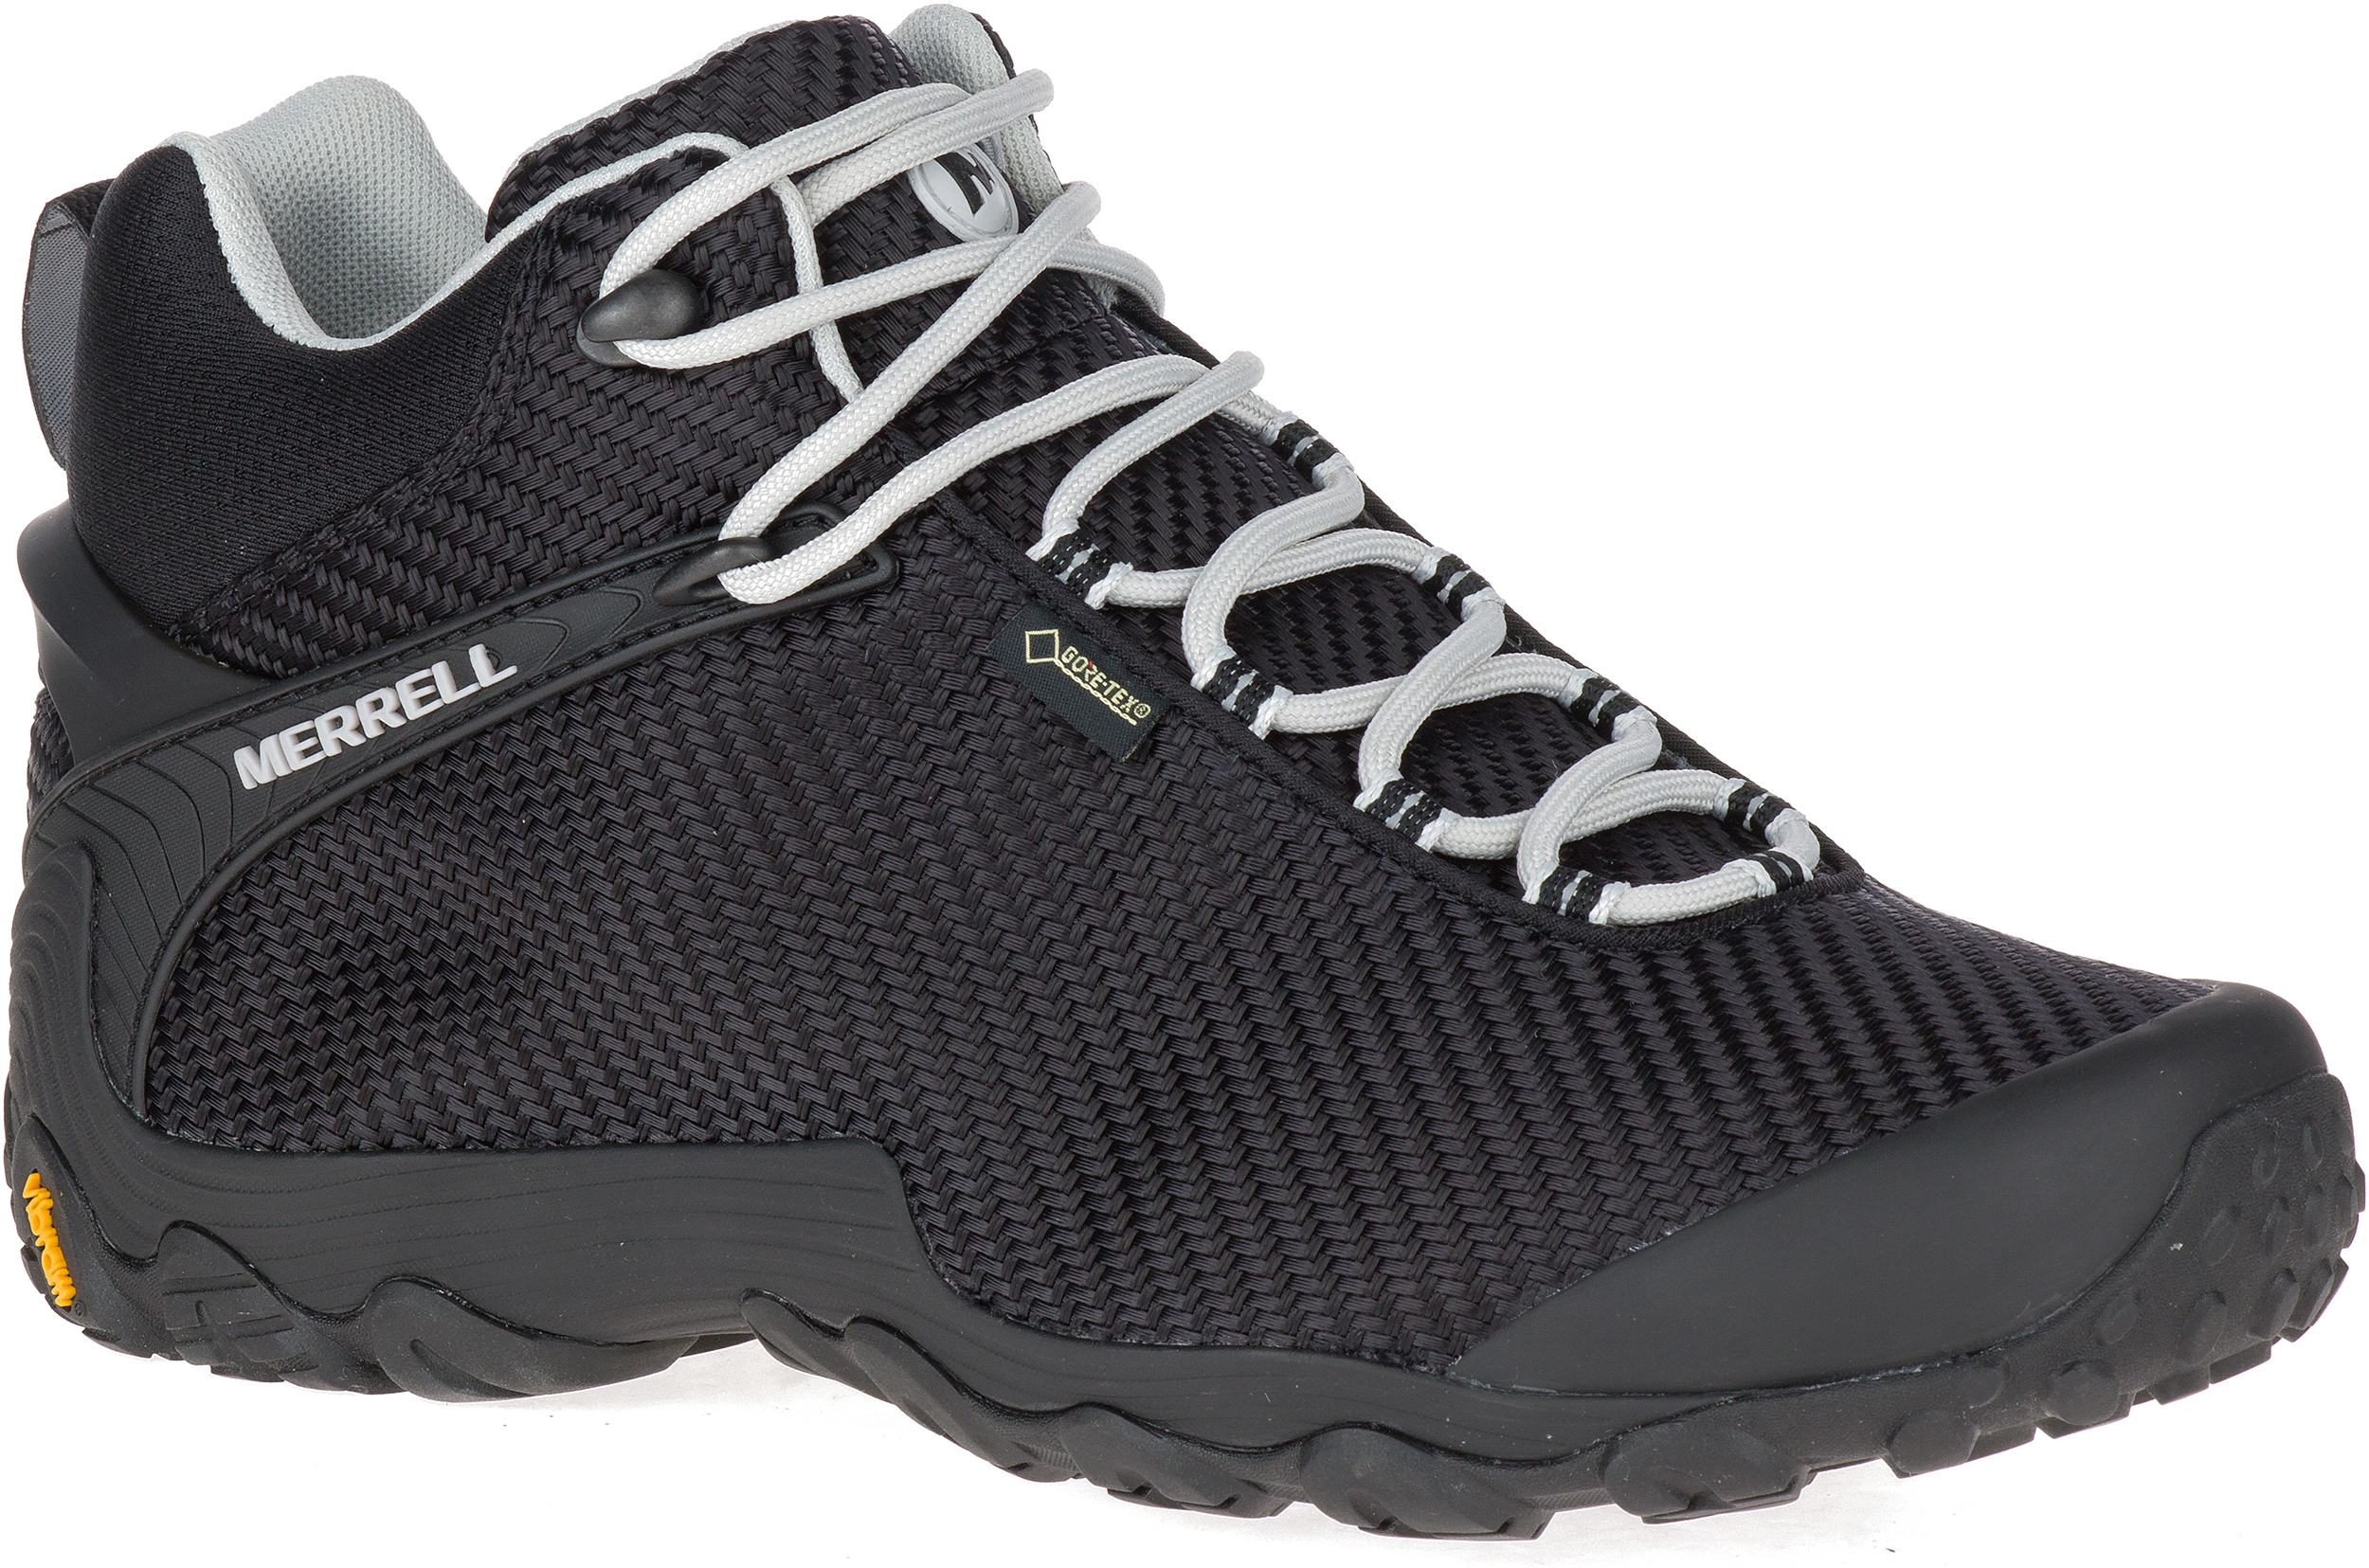 d306dec3f3 Merrell Chameleon 7 Storm Mid Gore-Tex Trail Shoes - Men's